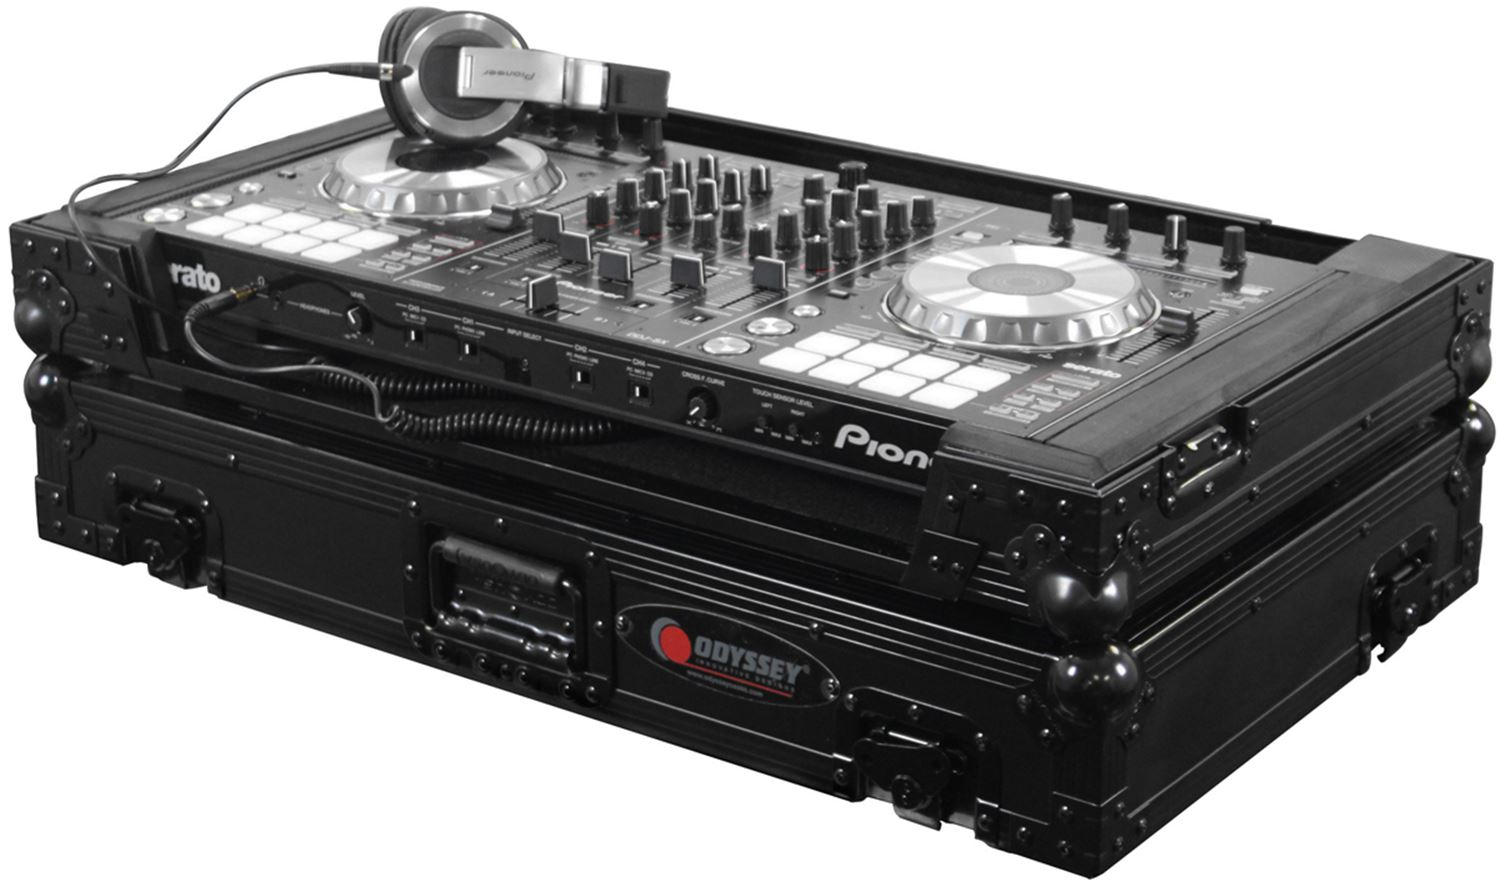 odyssey black label pioneer ddj sx dj controller case fzeupiddjsxbl. Black Bedroom Furniture Sets. Home Design Ideas